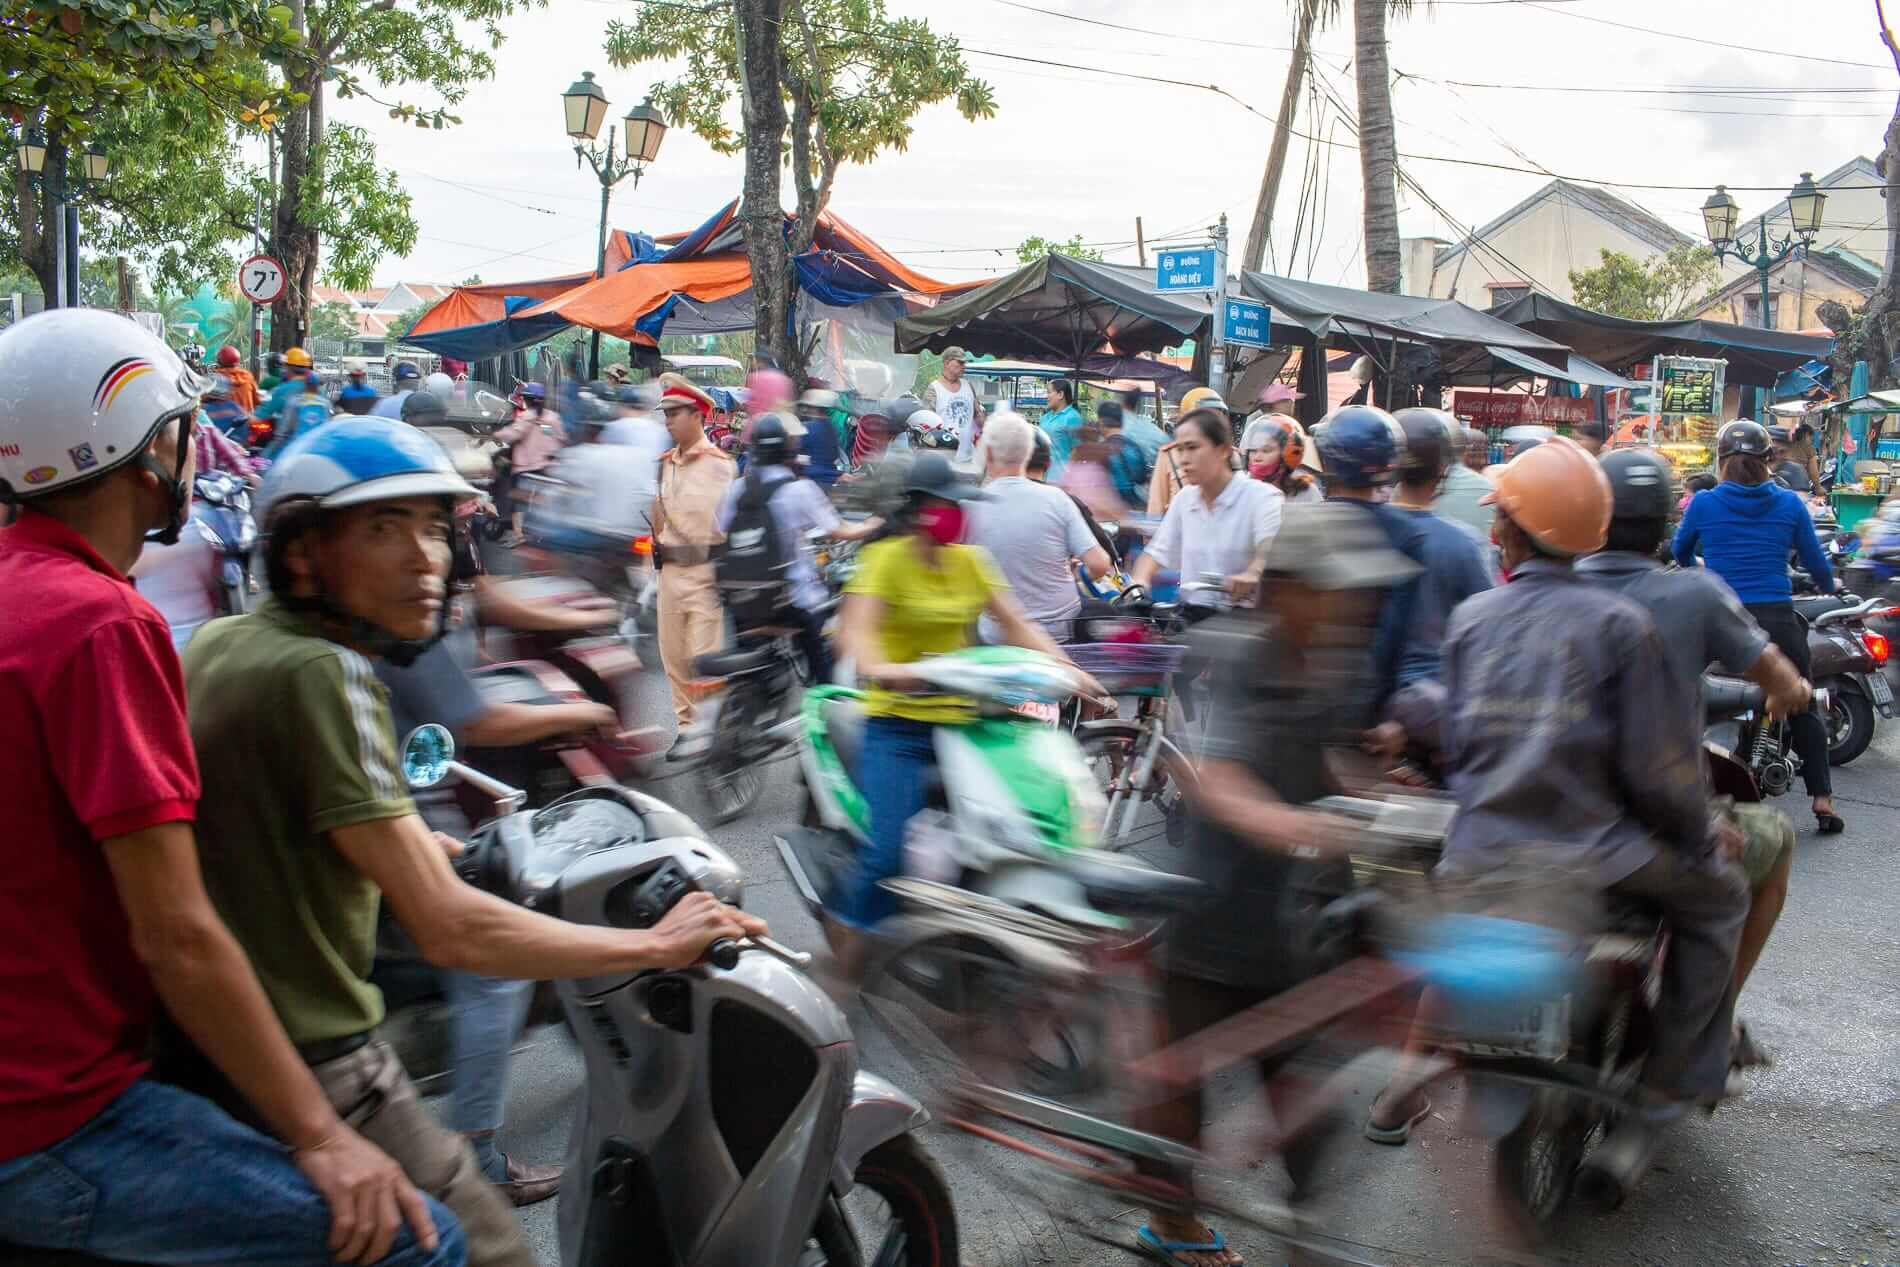 The busy streets of Vietnam packed with motorcycles